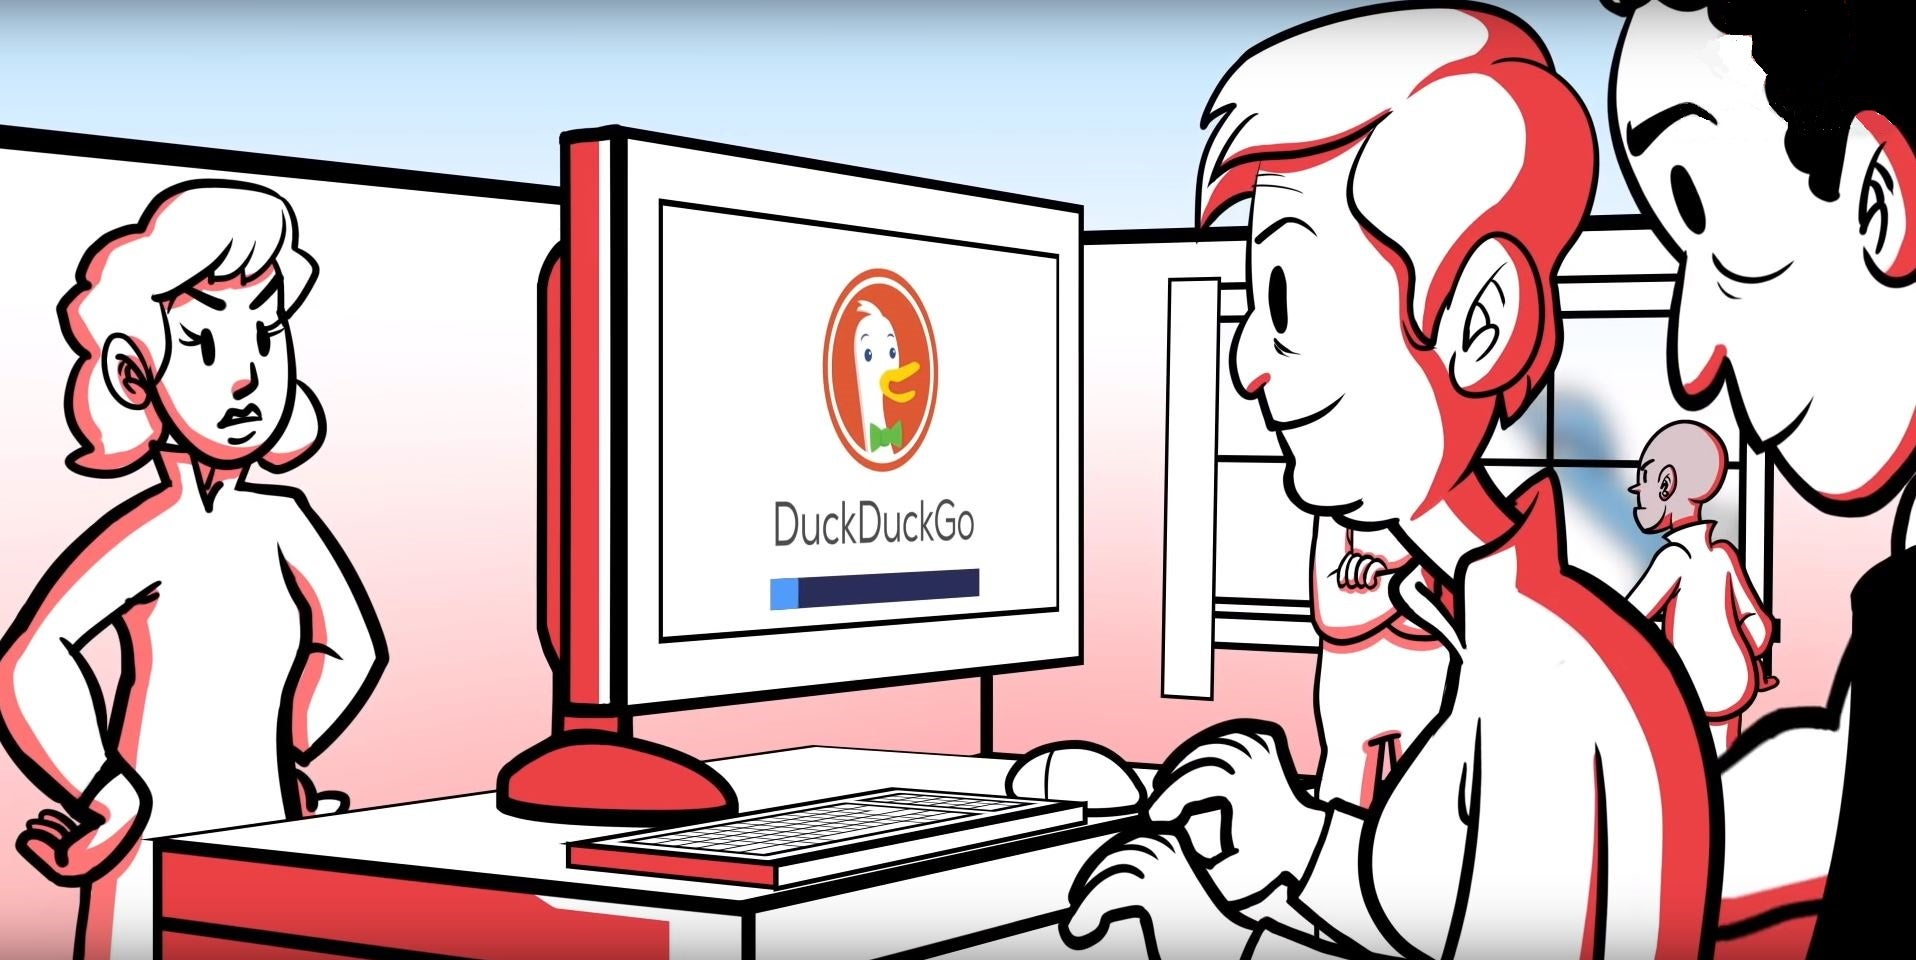 What is DuckDuckGo?